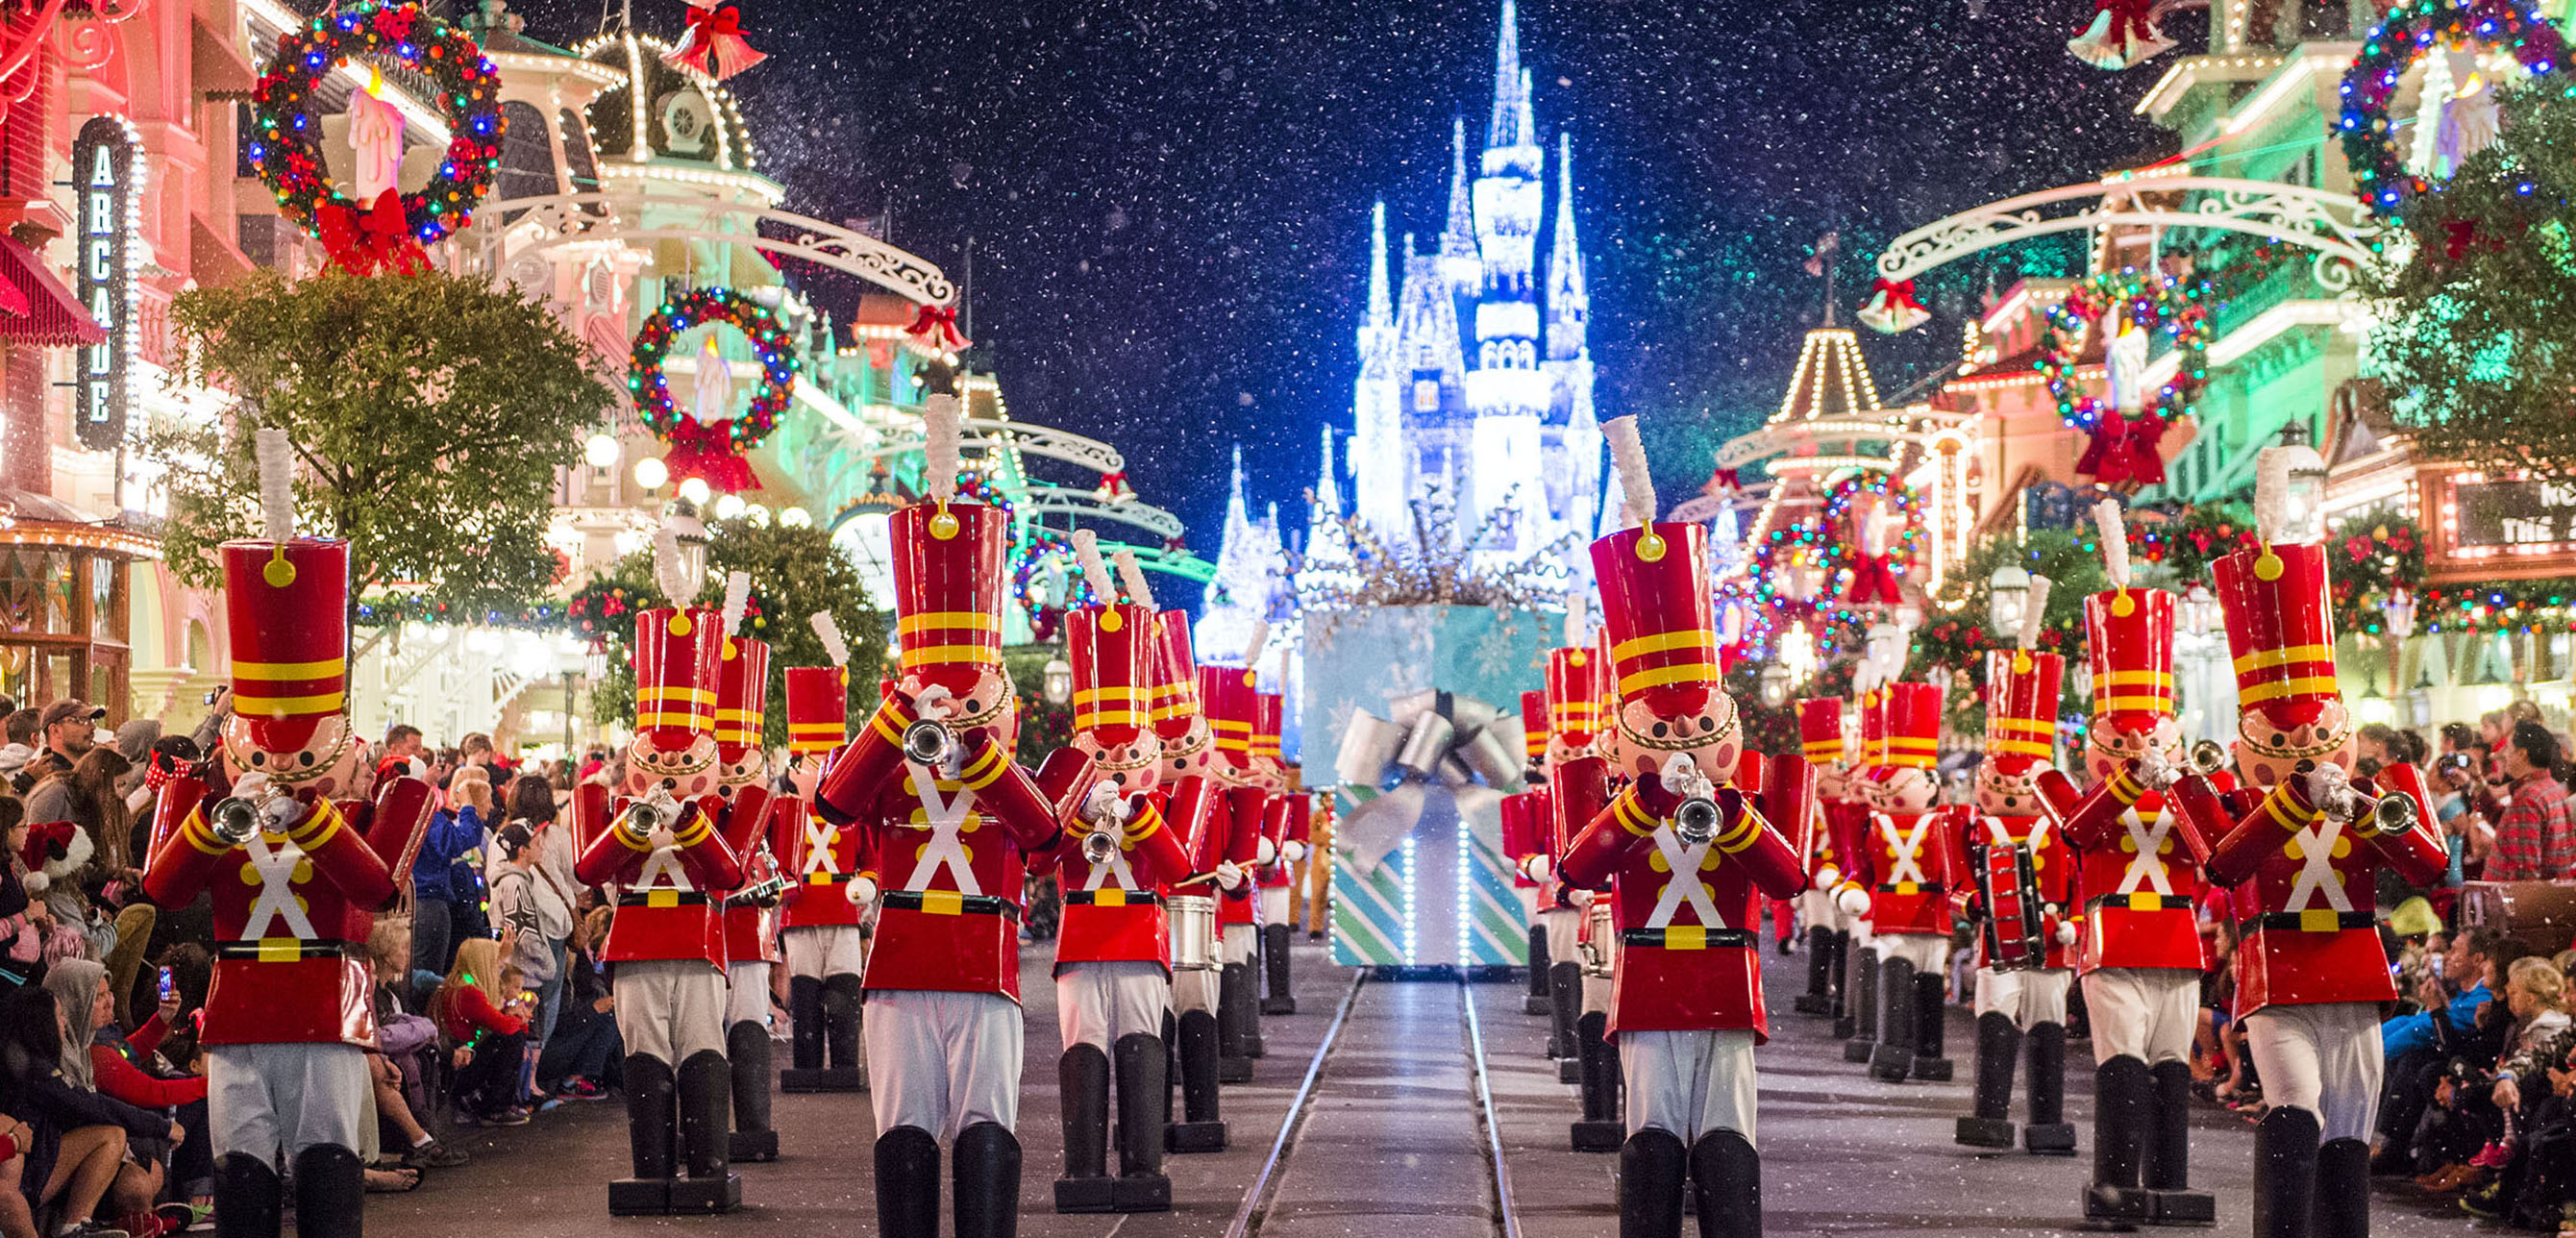 Kissimmee Christmas Parade 2019 Celebrate the Holidays | Experience Kissimmee